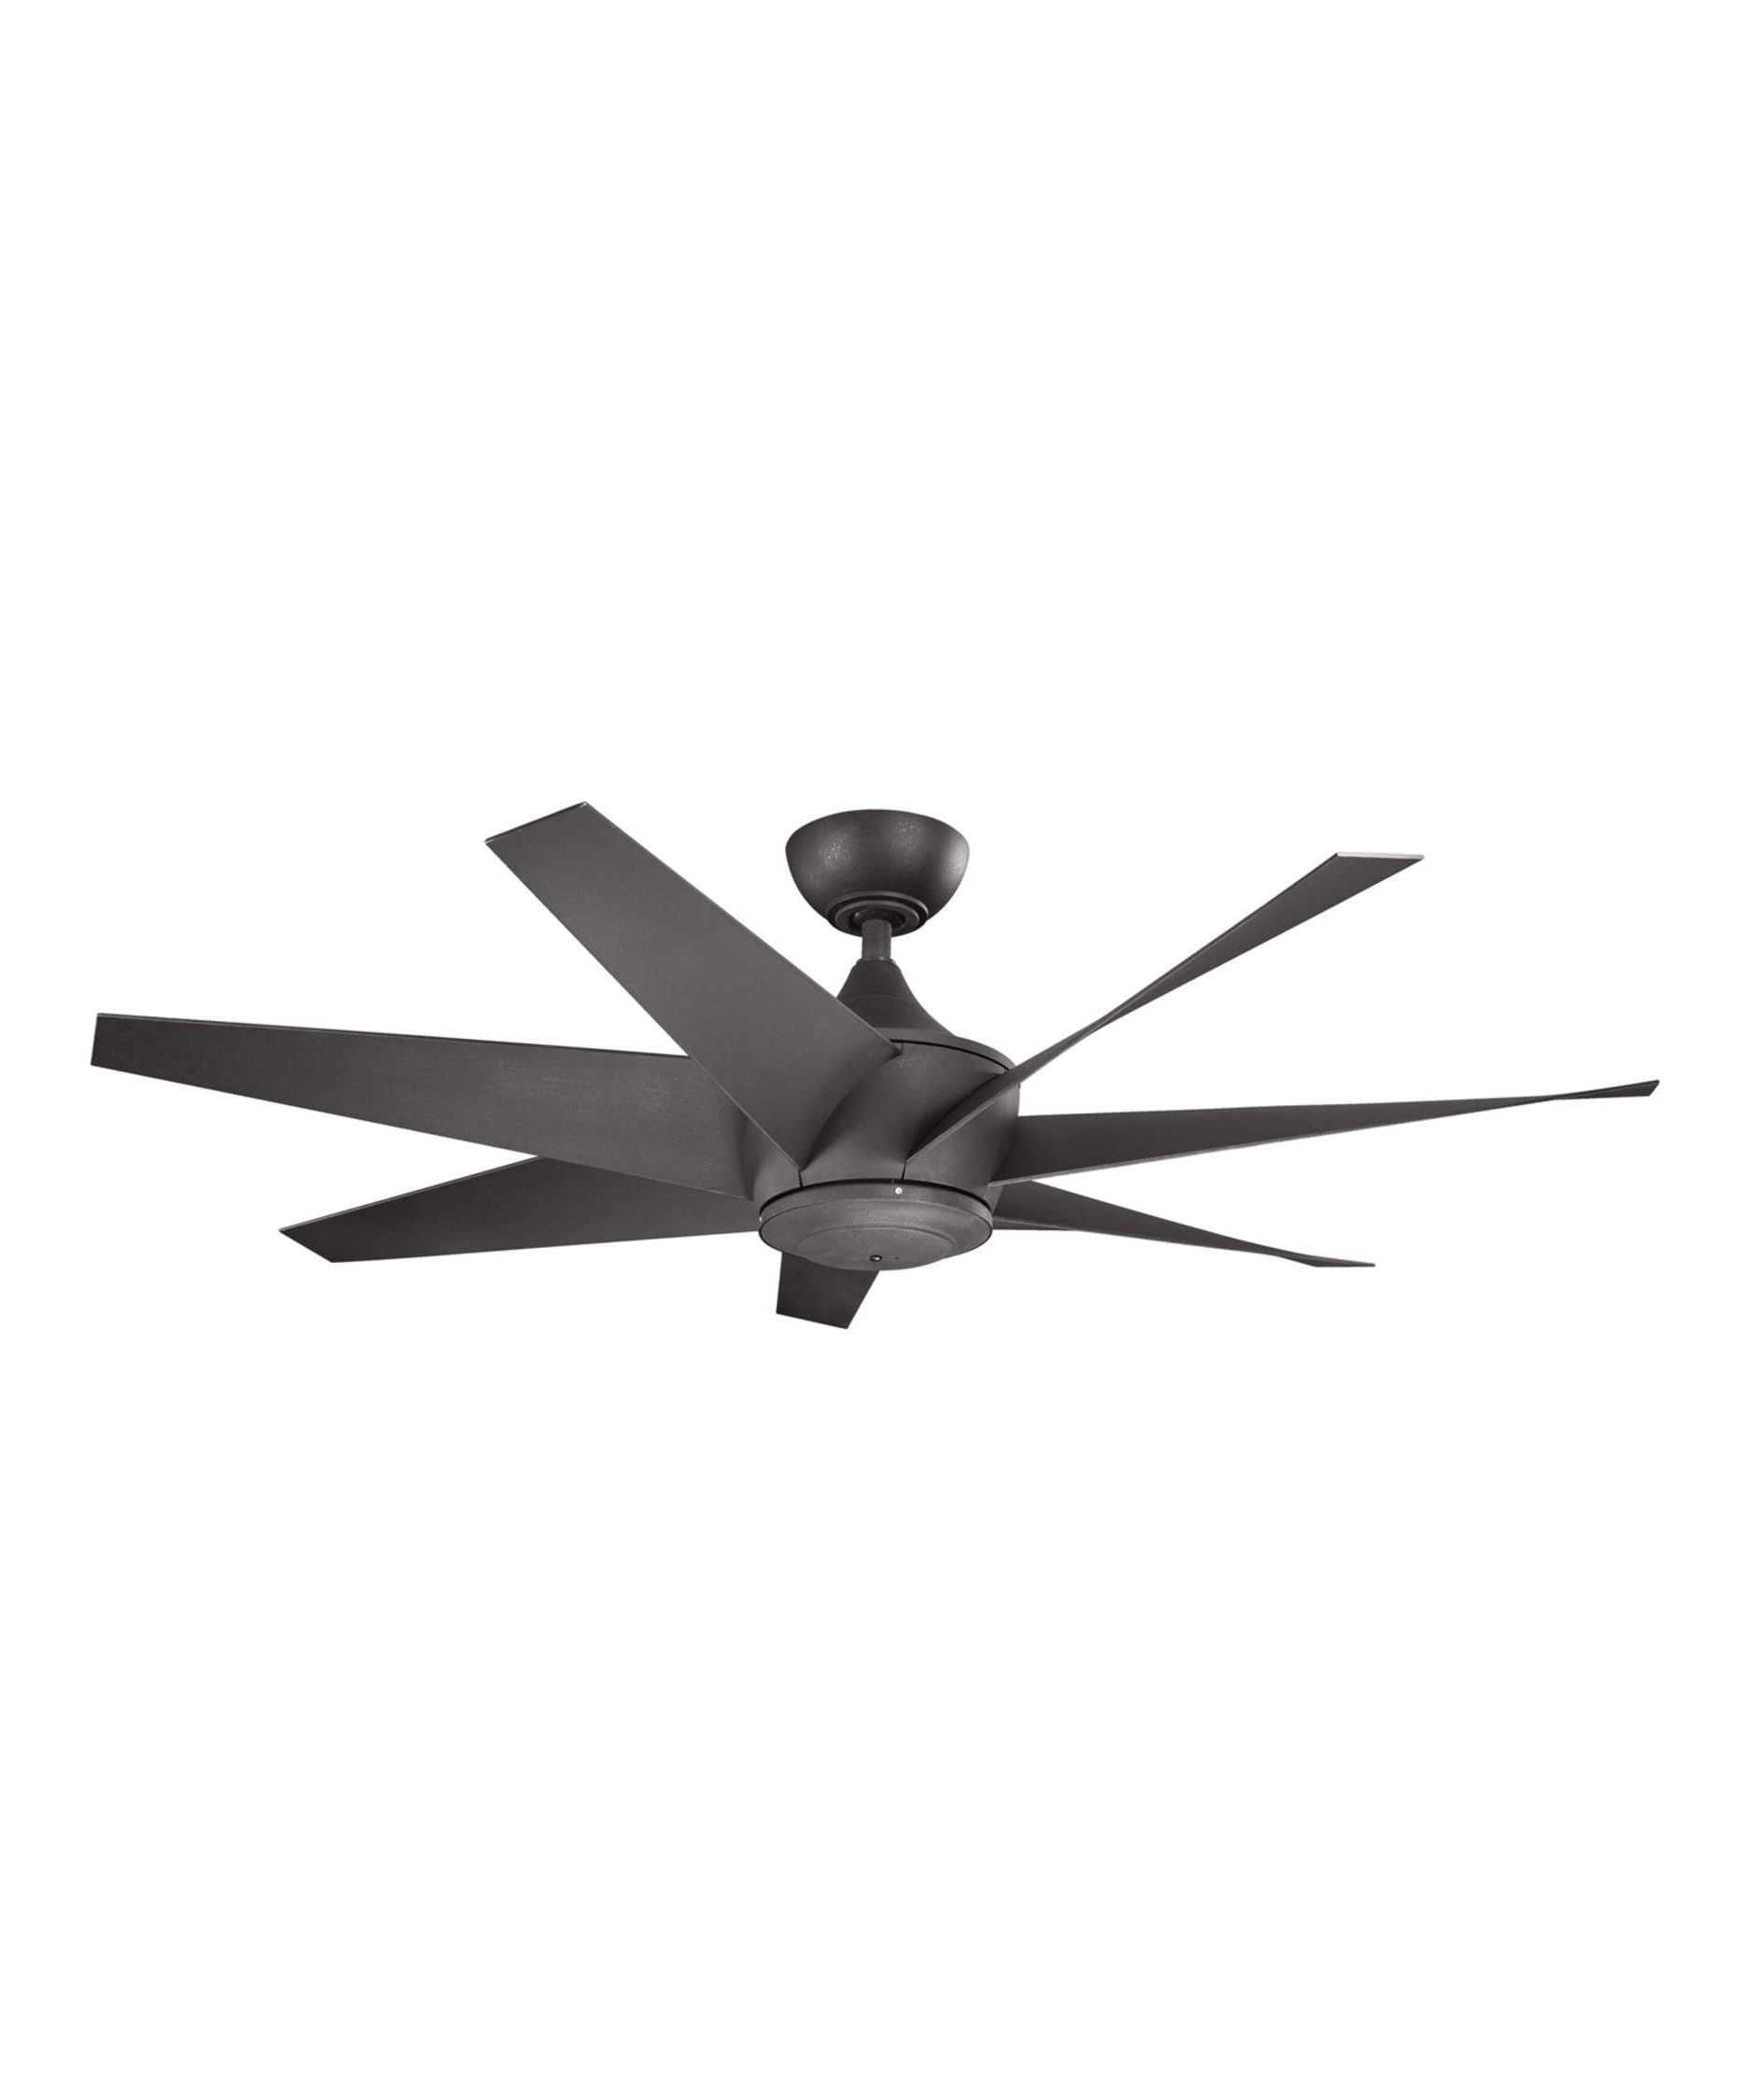 Outdoor Ceiling Fans For 7 Foot Ceilings Intended For Latest Kichler Lehr Ii 54 Inch 7 Blade Ceiling Fan (View 14 of 20)